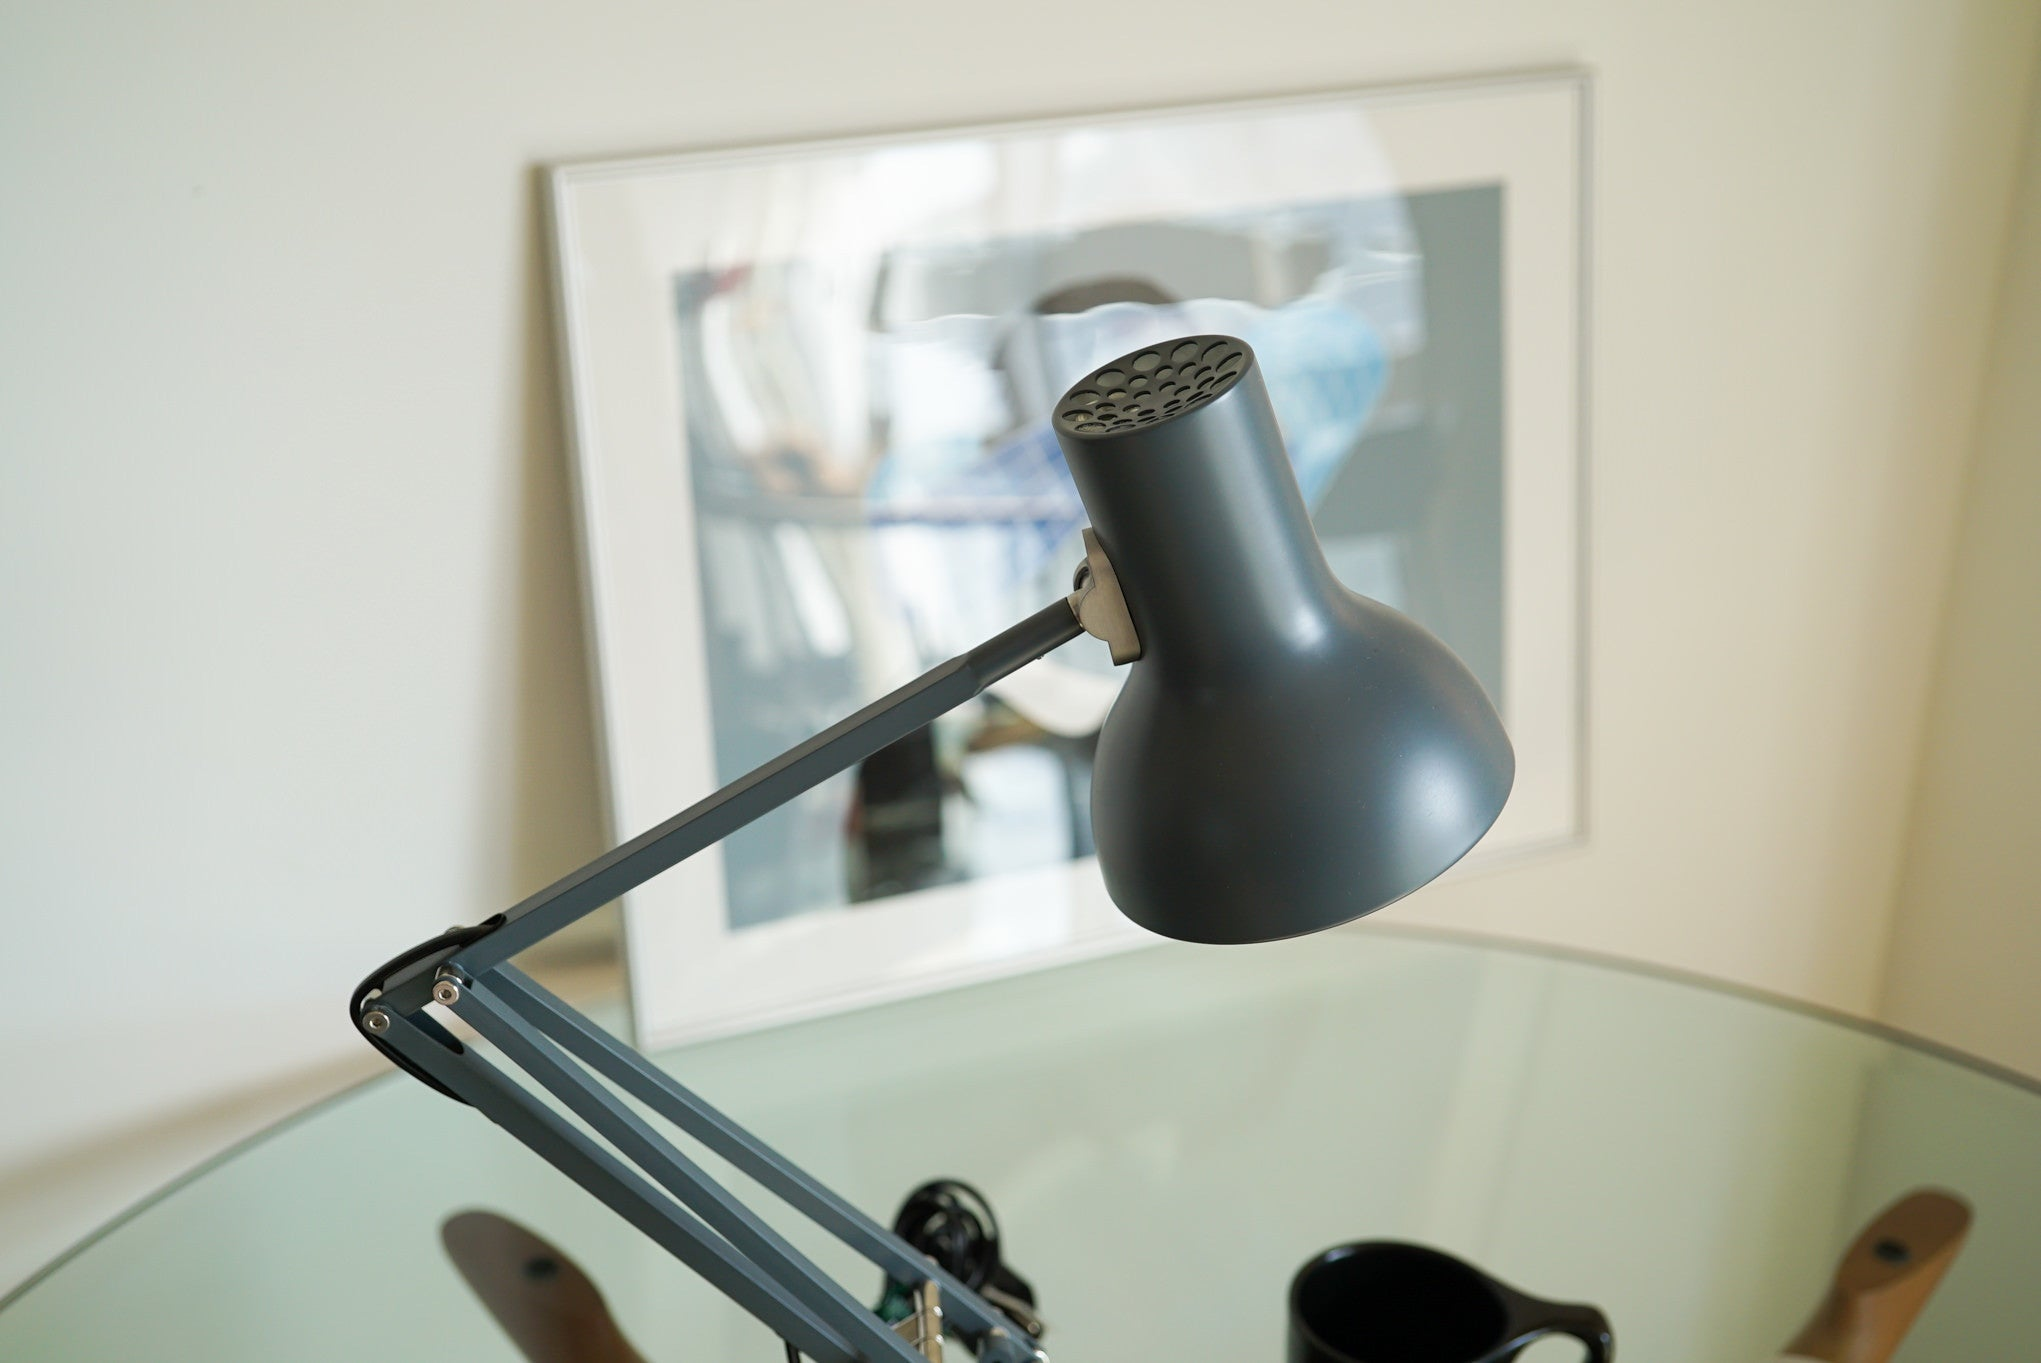 Anglepoise Type 75 Mini Desk Lamp - Slate Grey アングルポイズ ミニ グレー